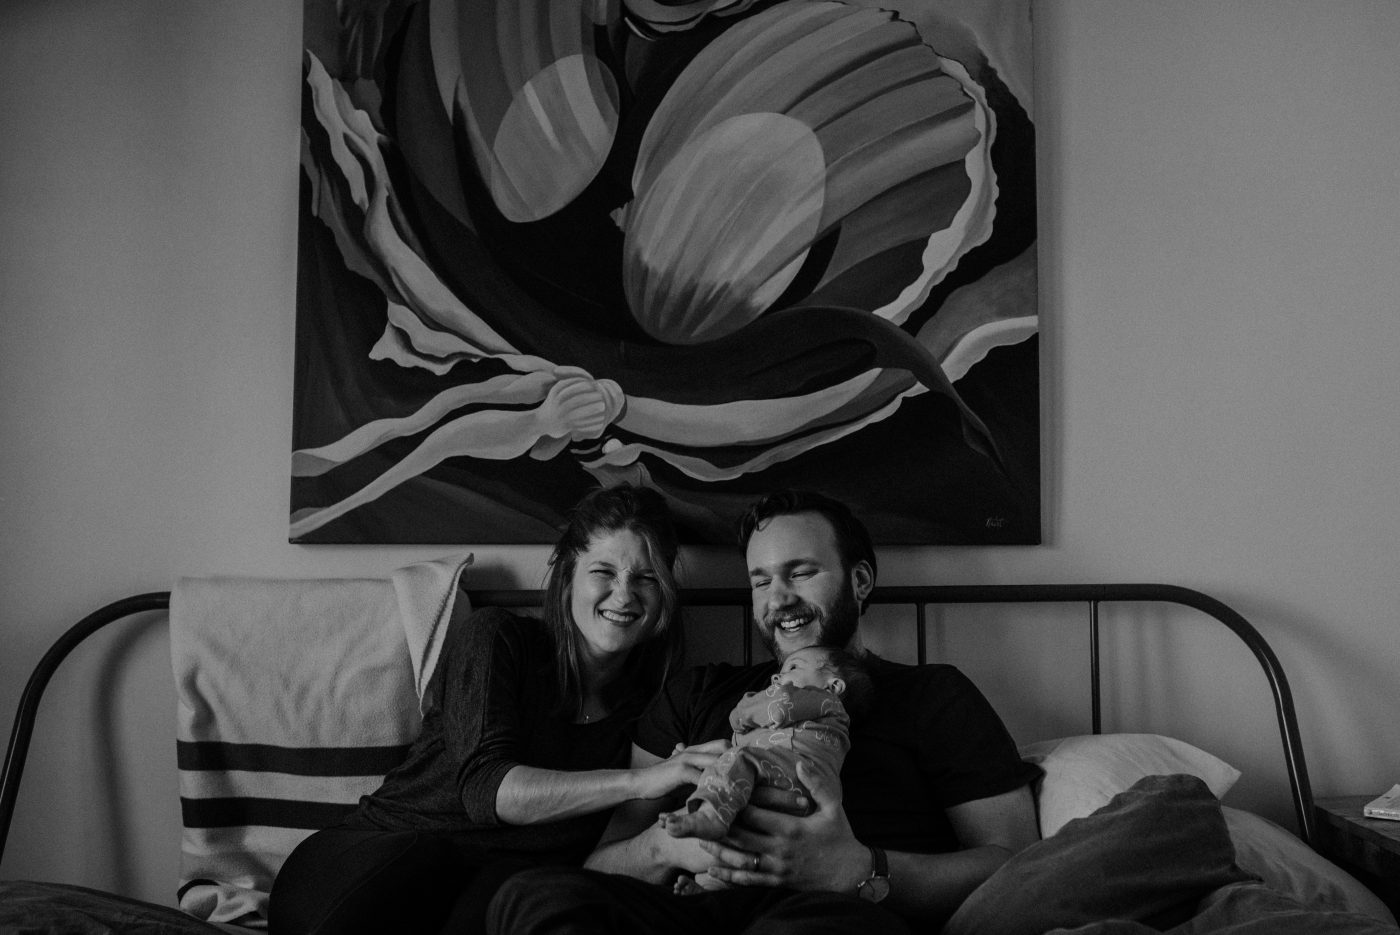 newborn family session, toronto. Family on bed together.